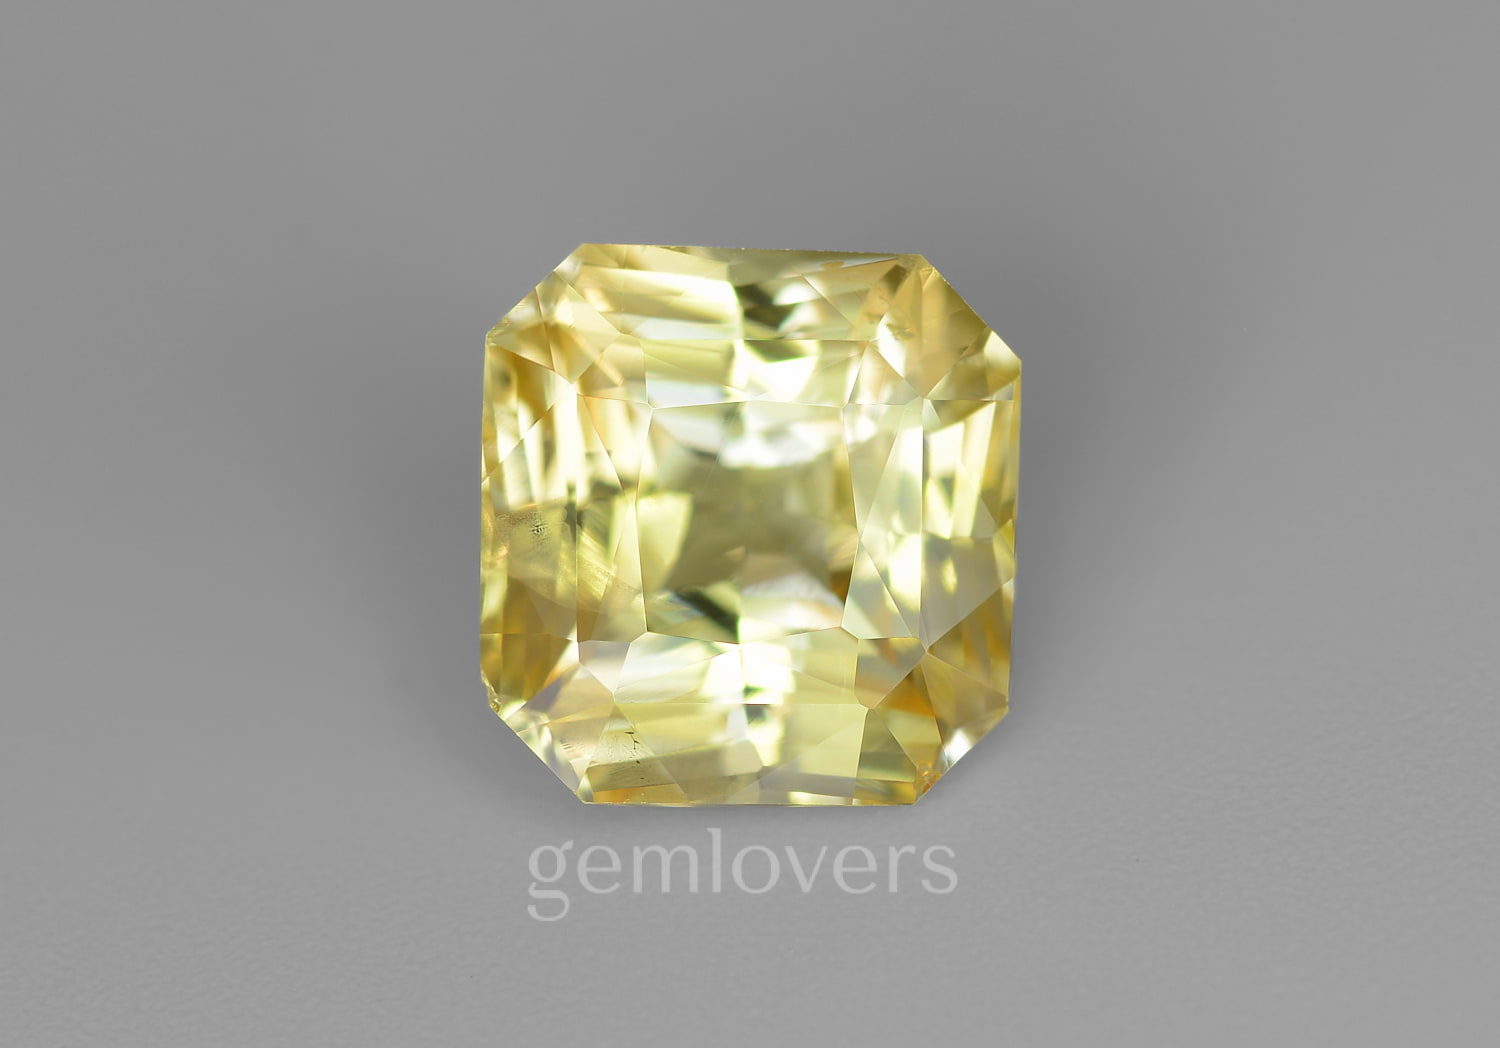 Radiant cut natural yellow sapphire